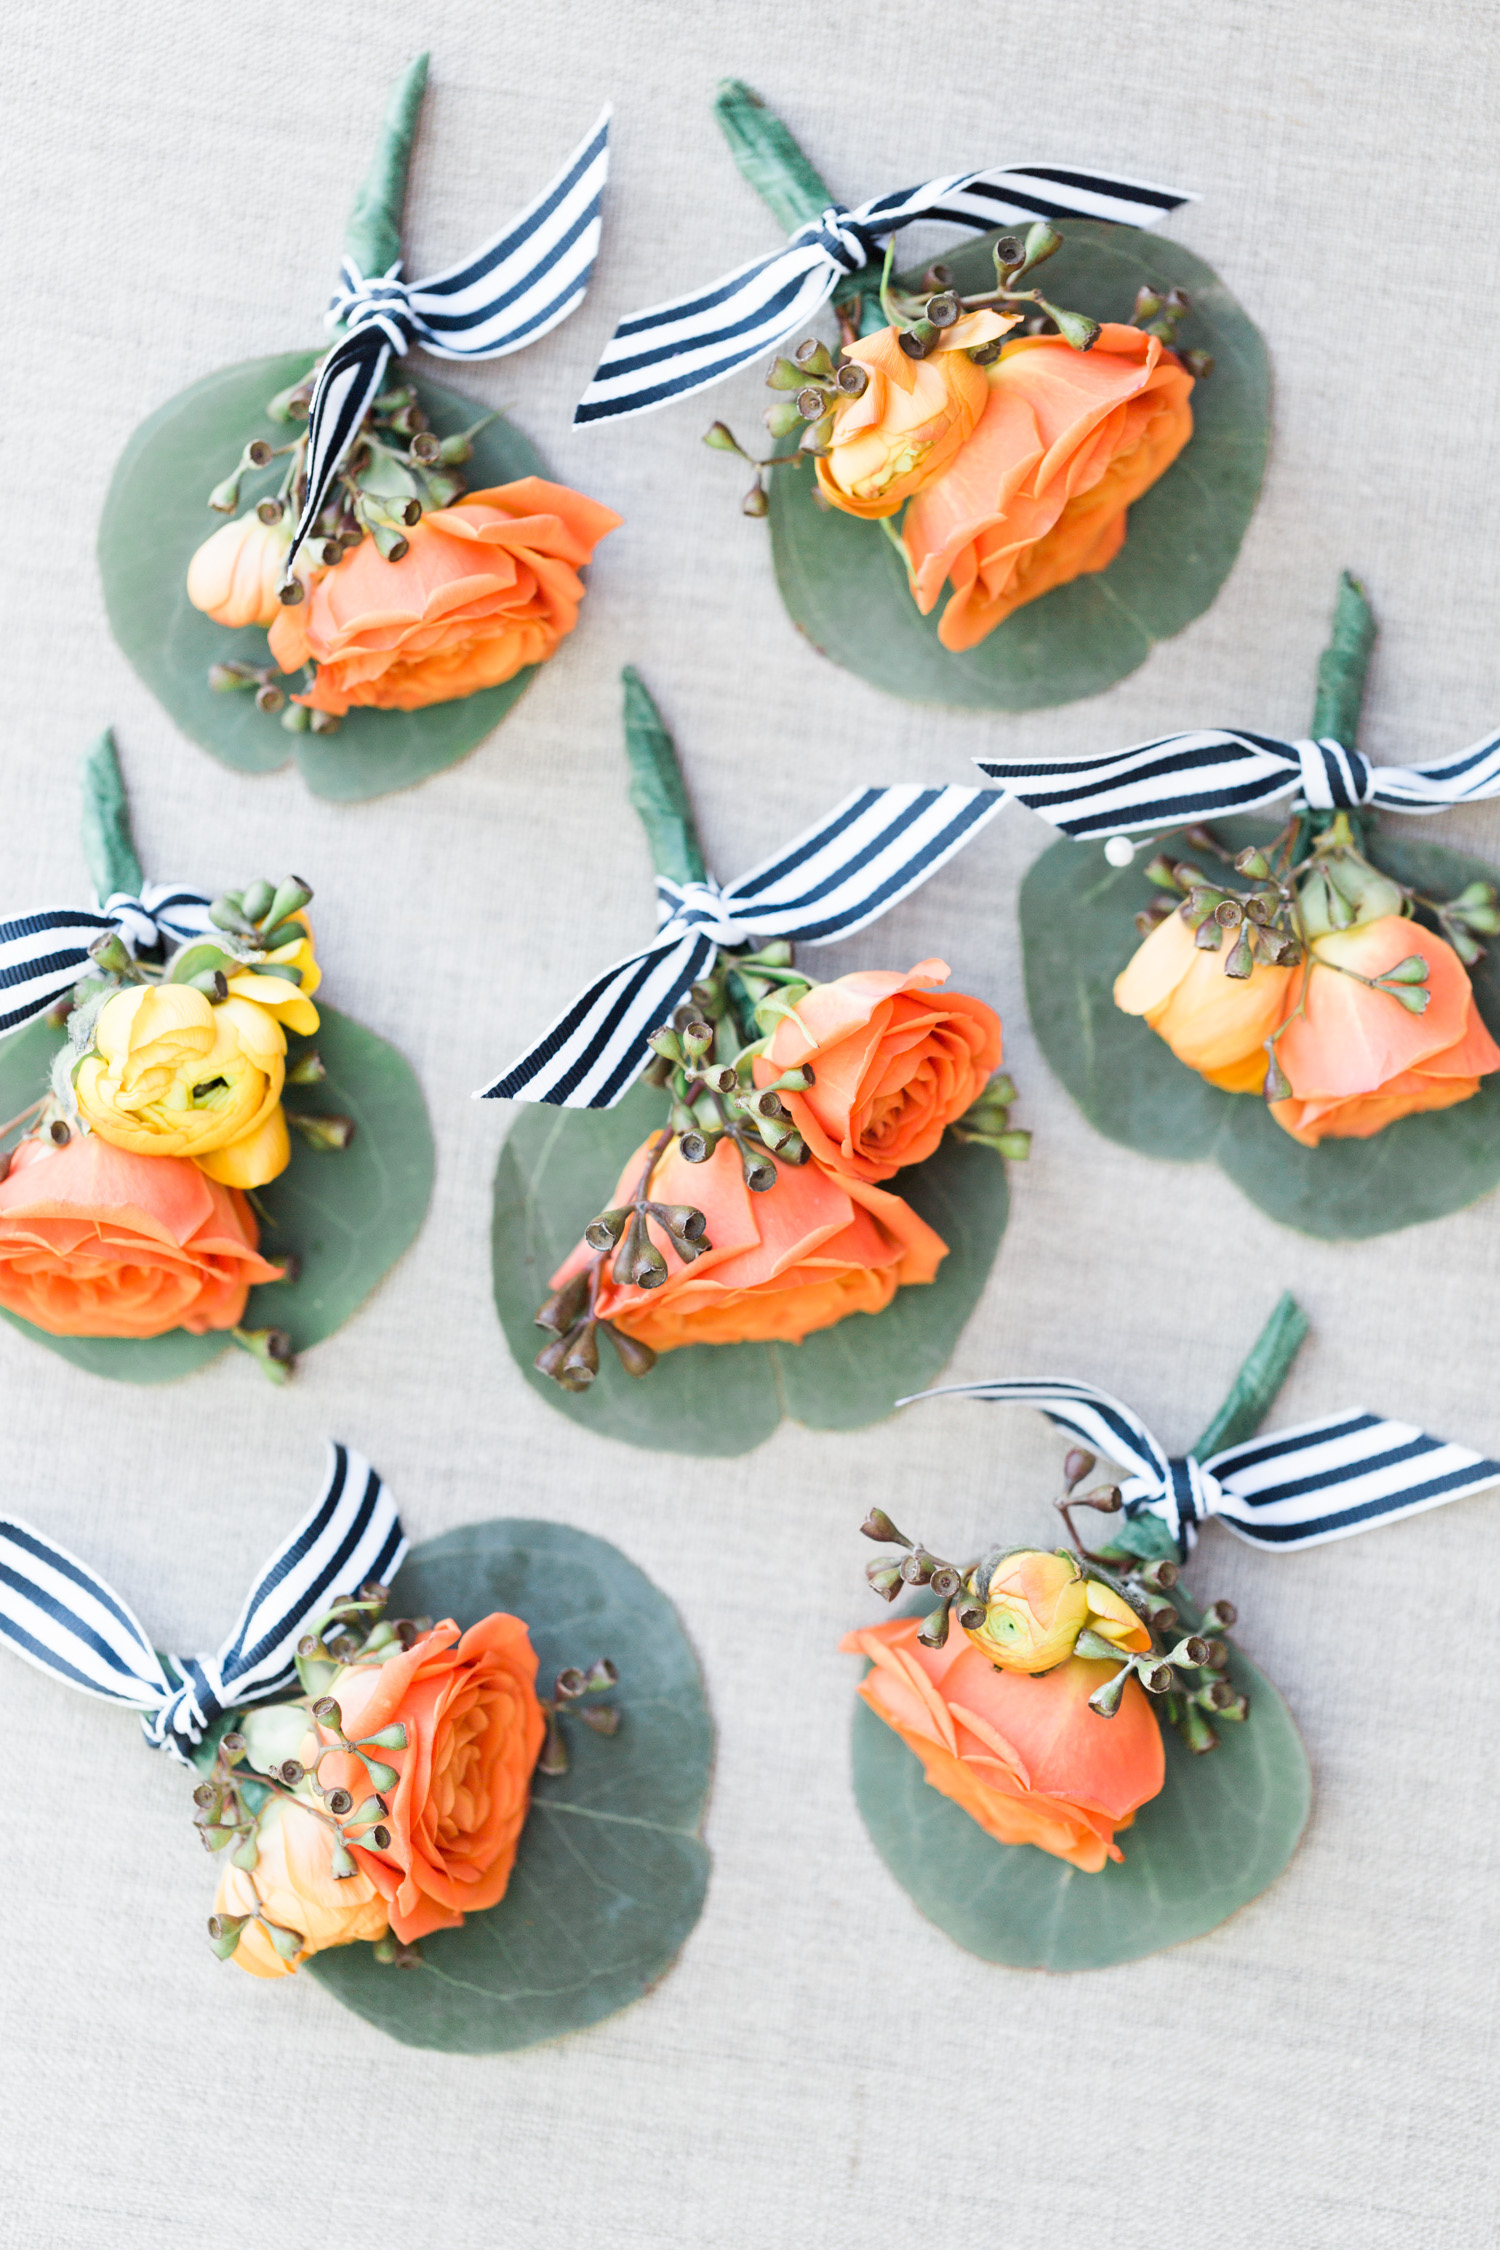 Orange and salmon rose boutonnieres with striped navy and white ribbon. So dreamy!